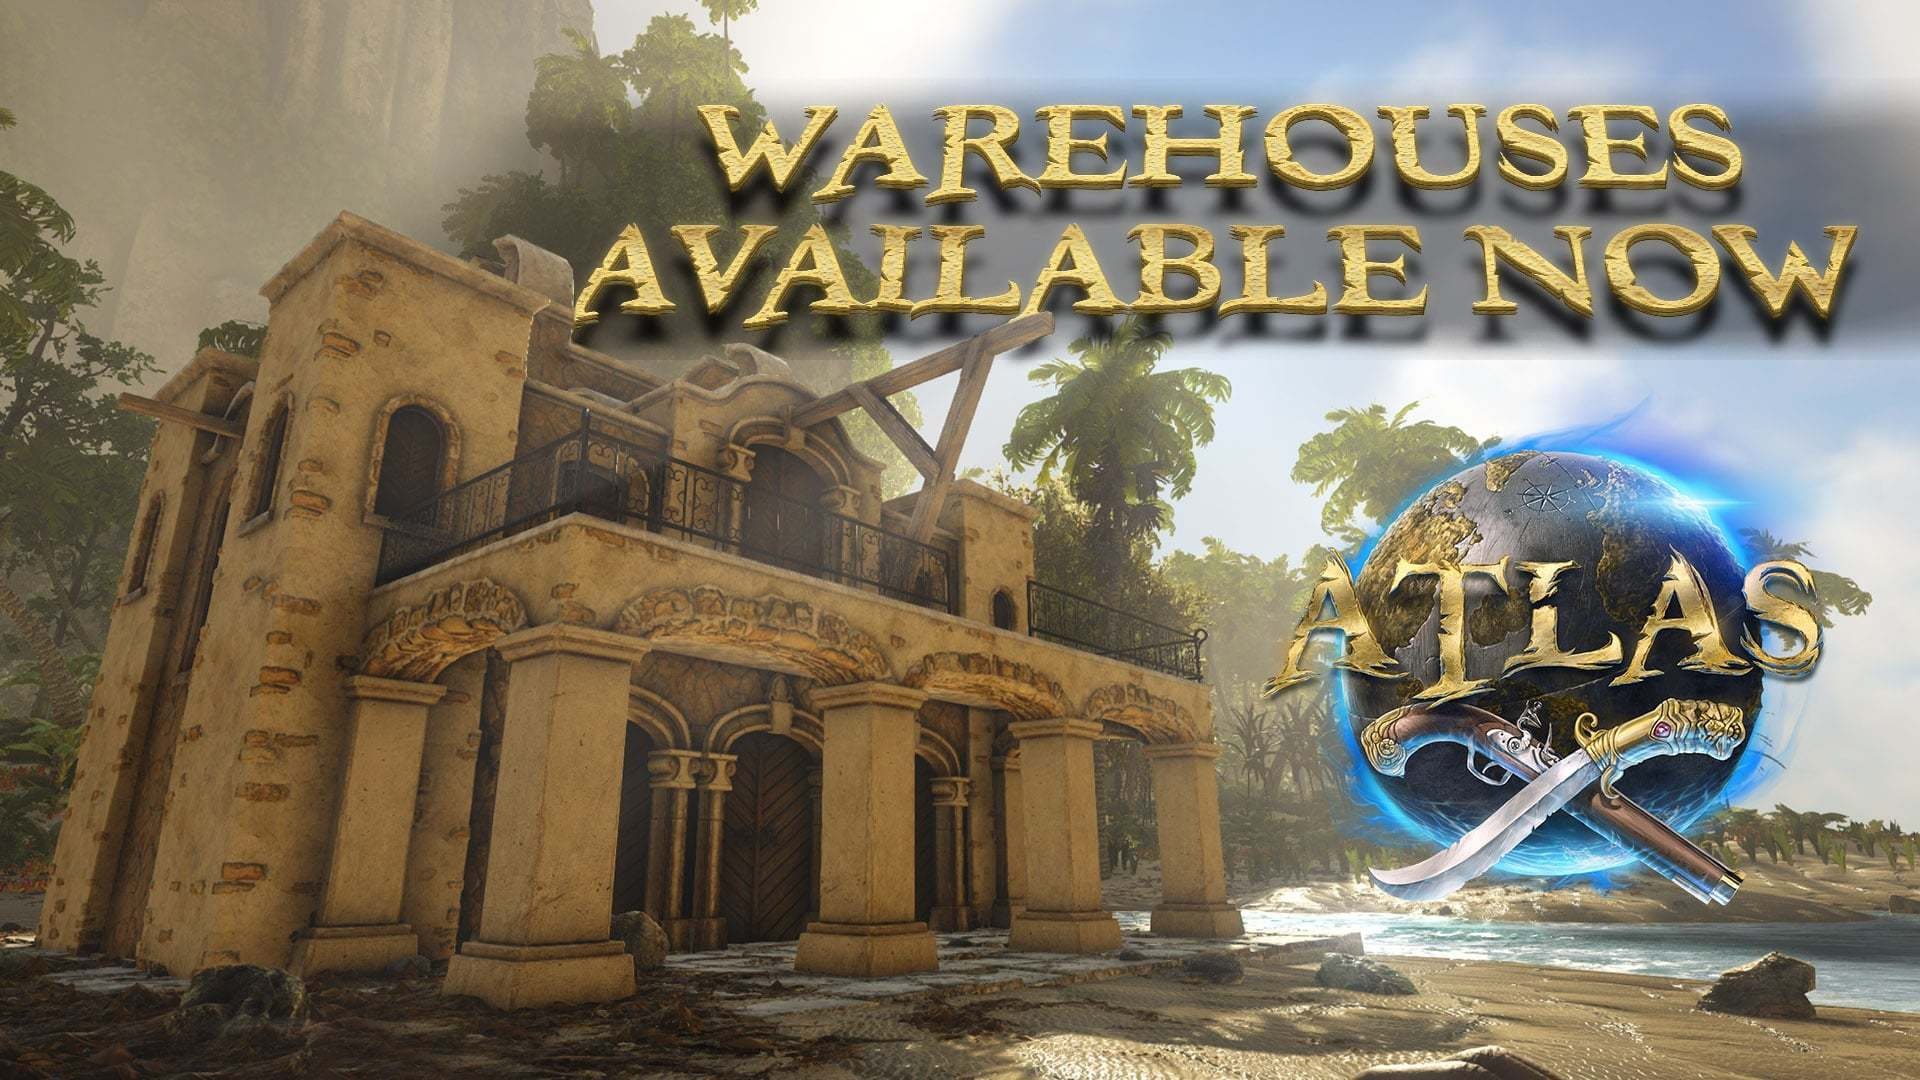 v409.1 - Warehouses Available Now!